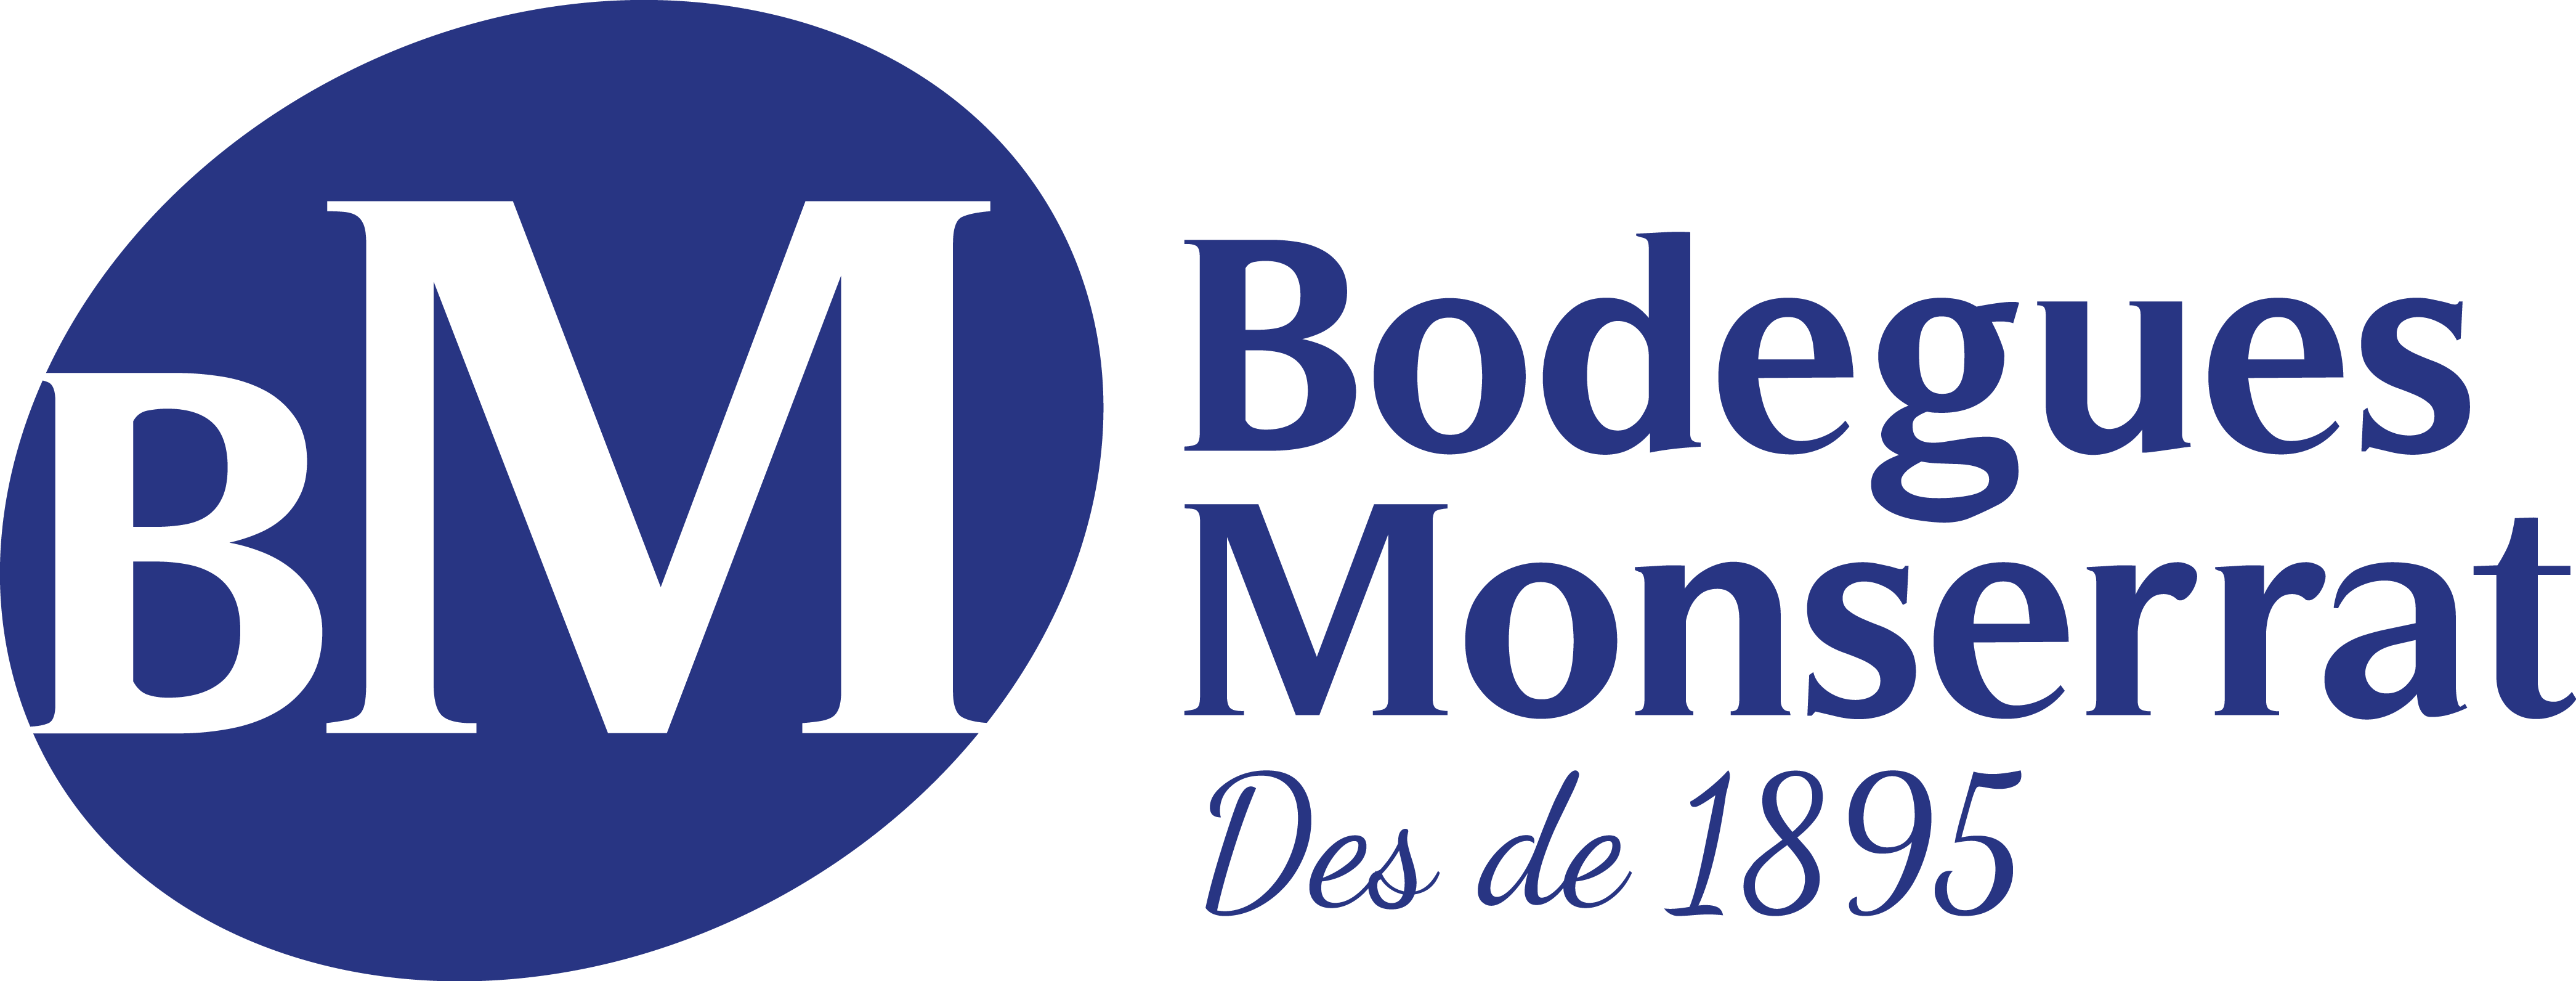 Bodegues Monserrat